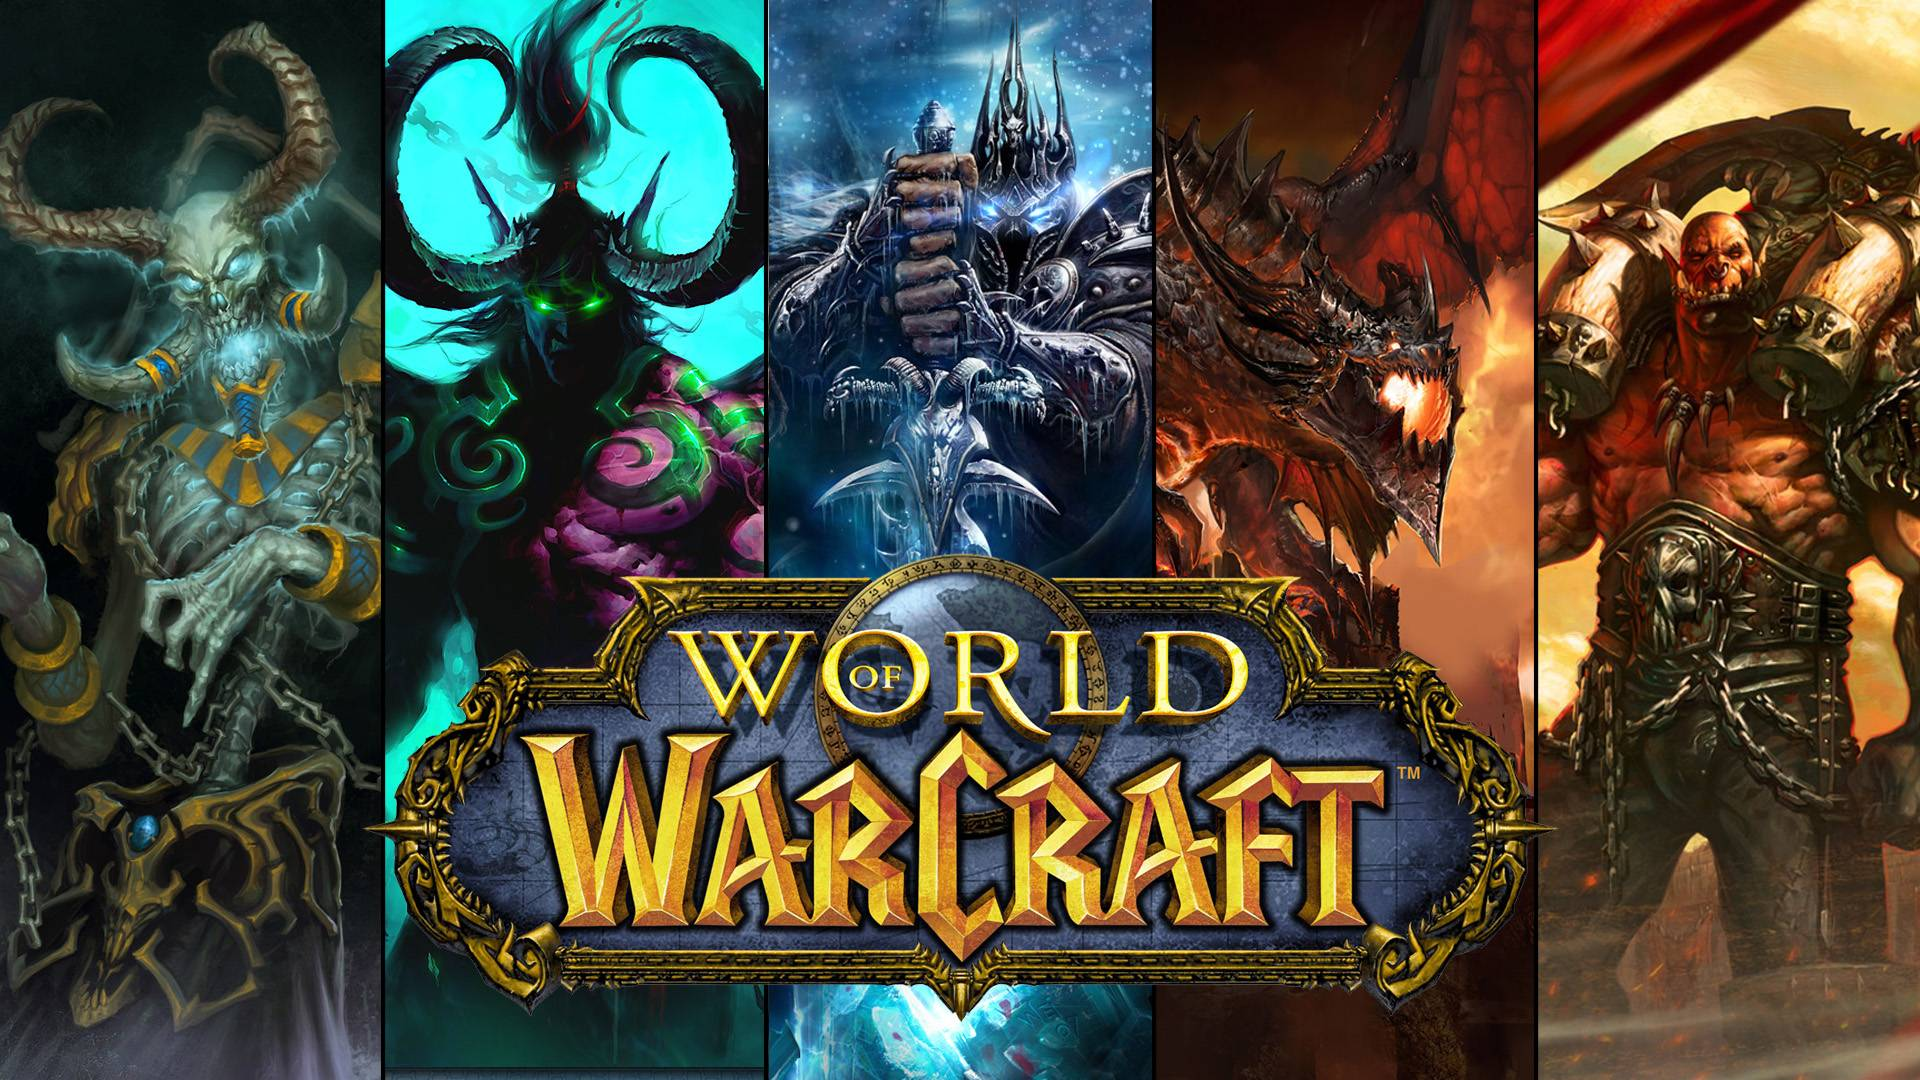 World Of Warcraft Series 441.42 Kb